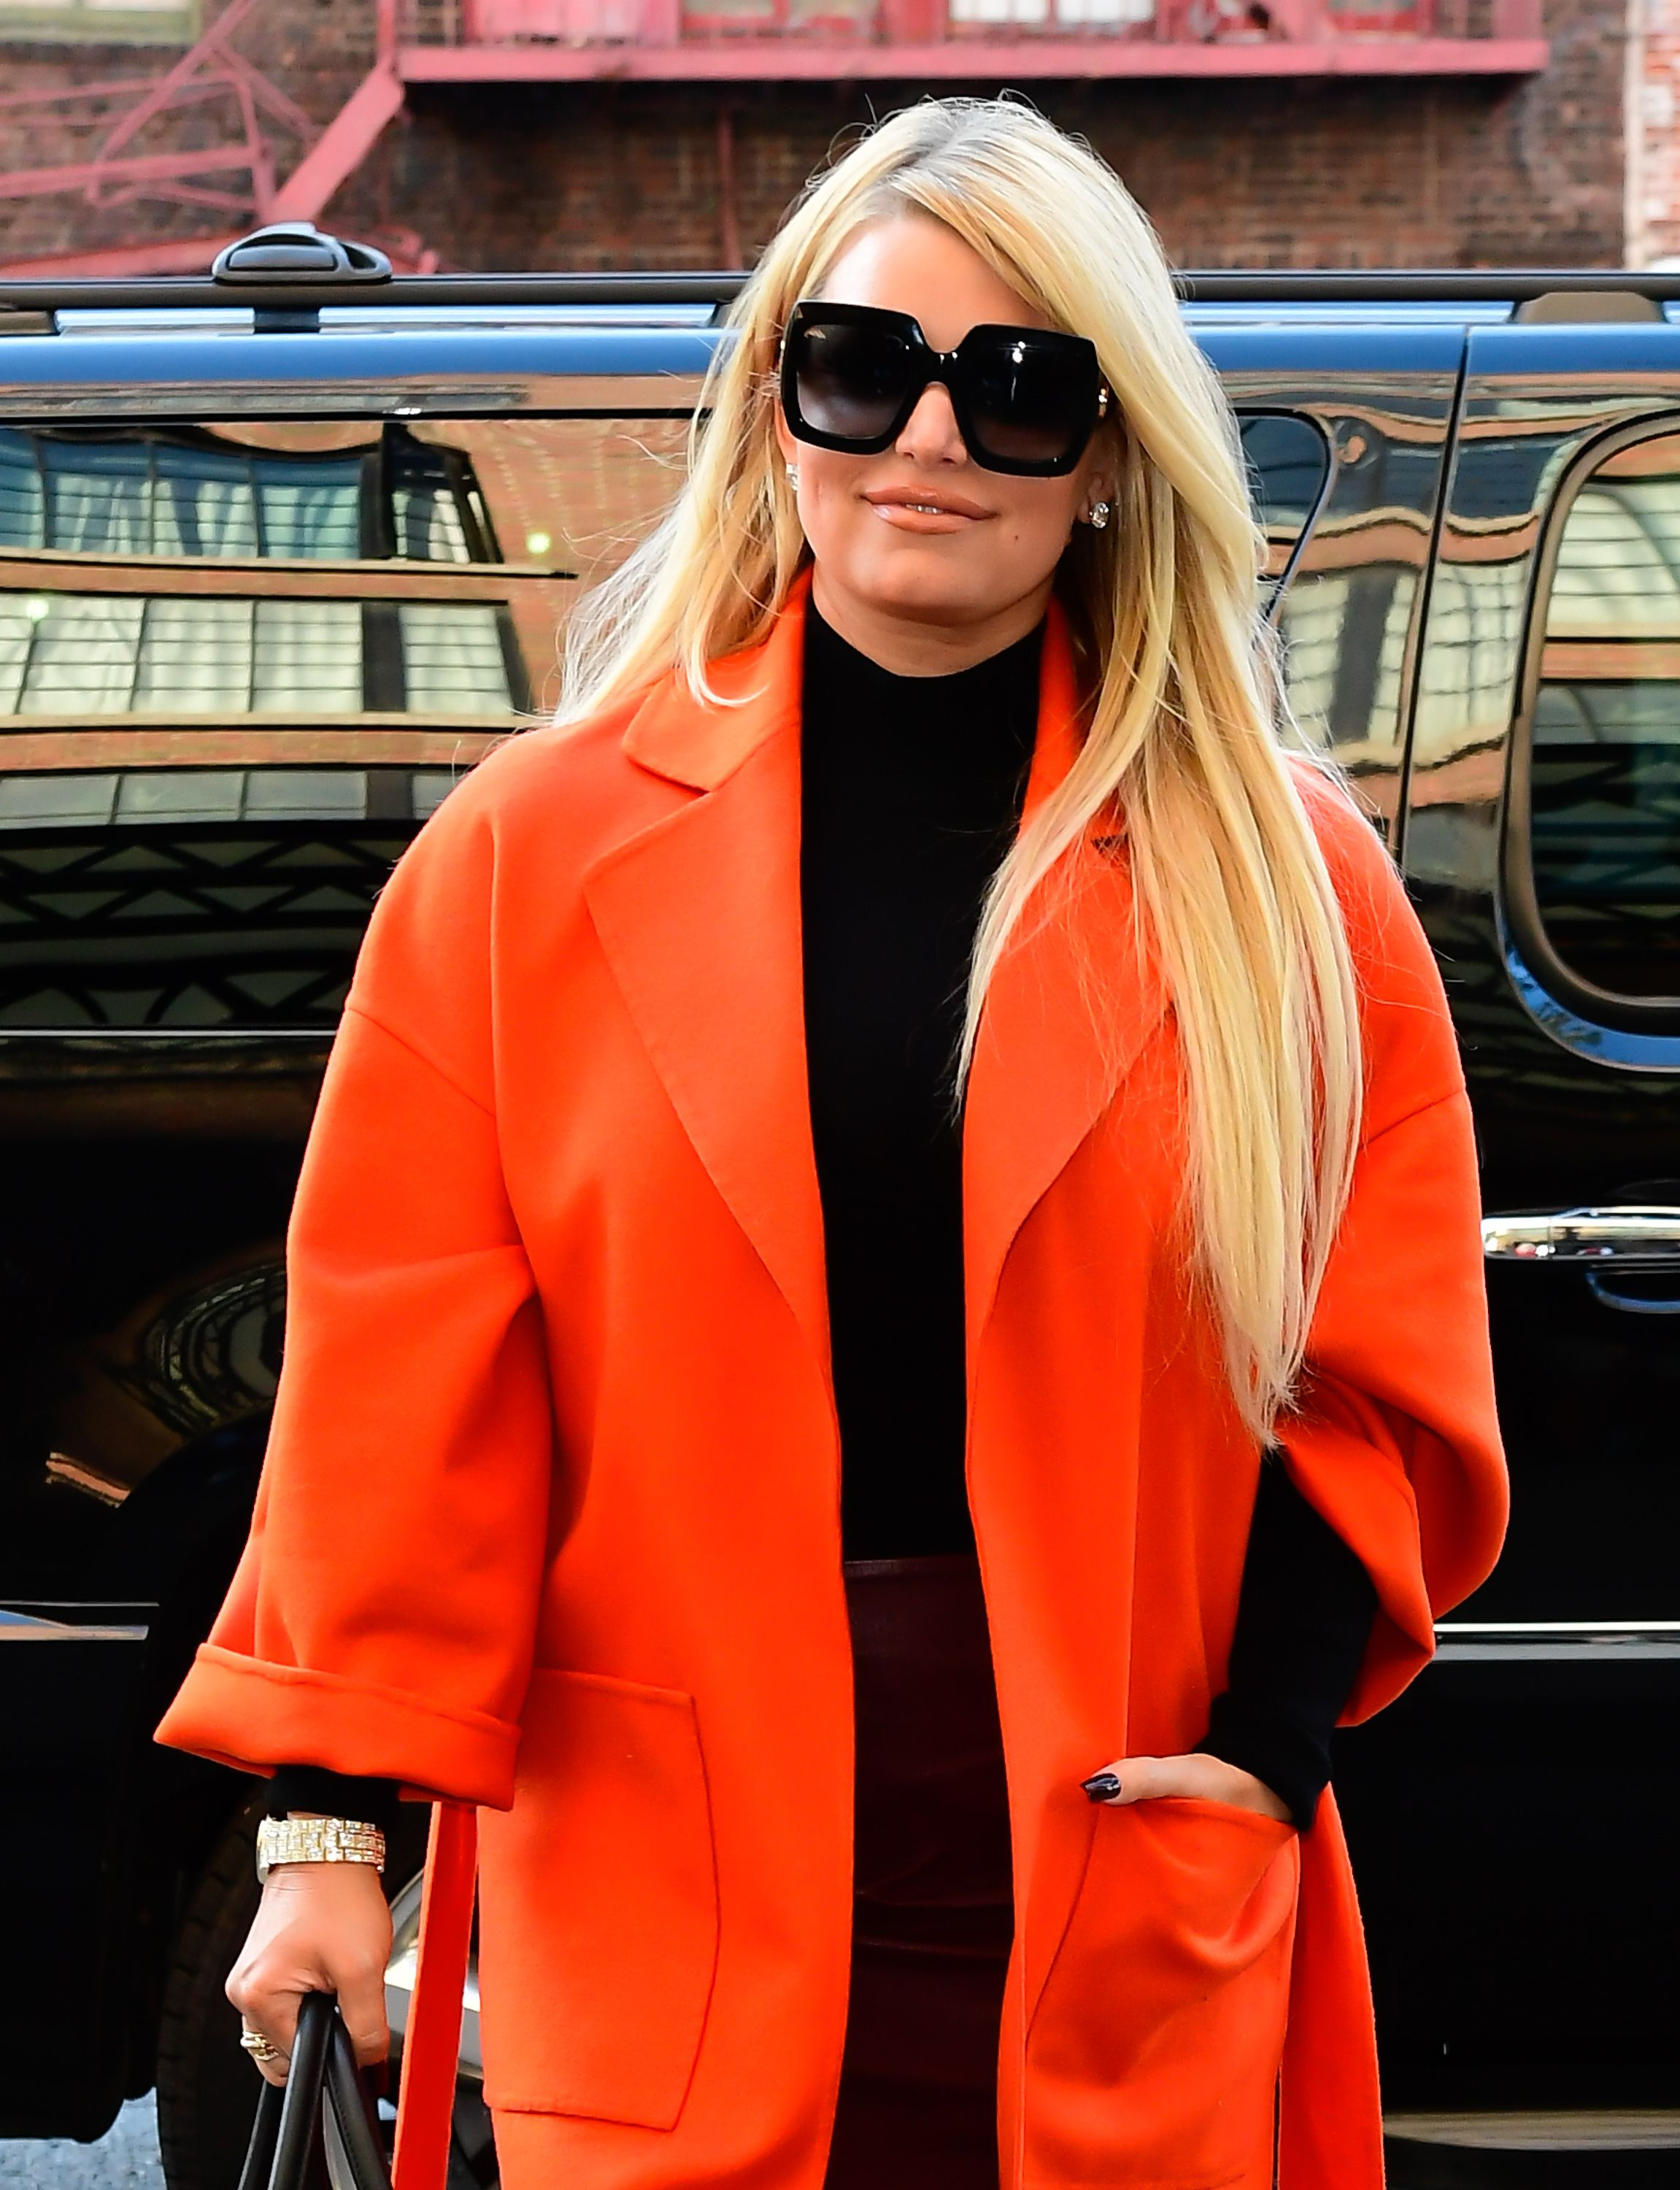 Actress Jessica Simpson at a hotel in SoHo on September 25, 2019 in New York City | Photo: Getty Images